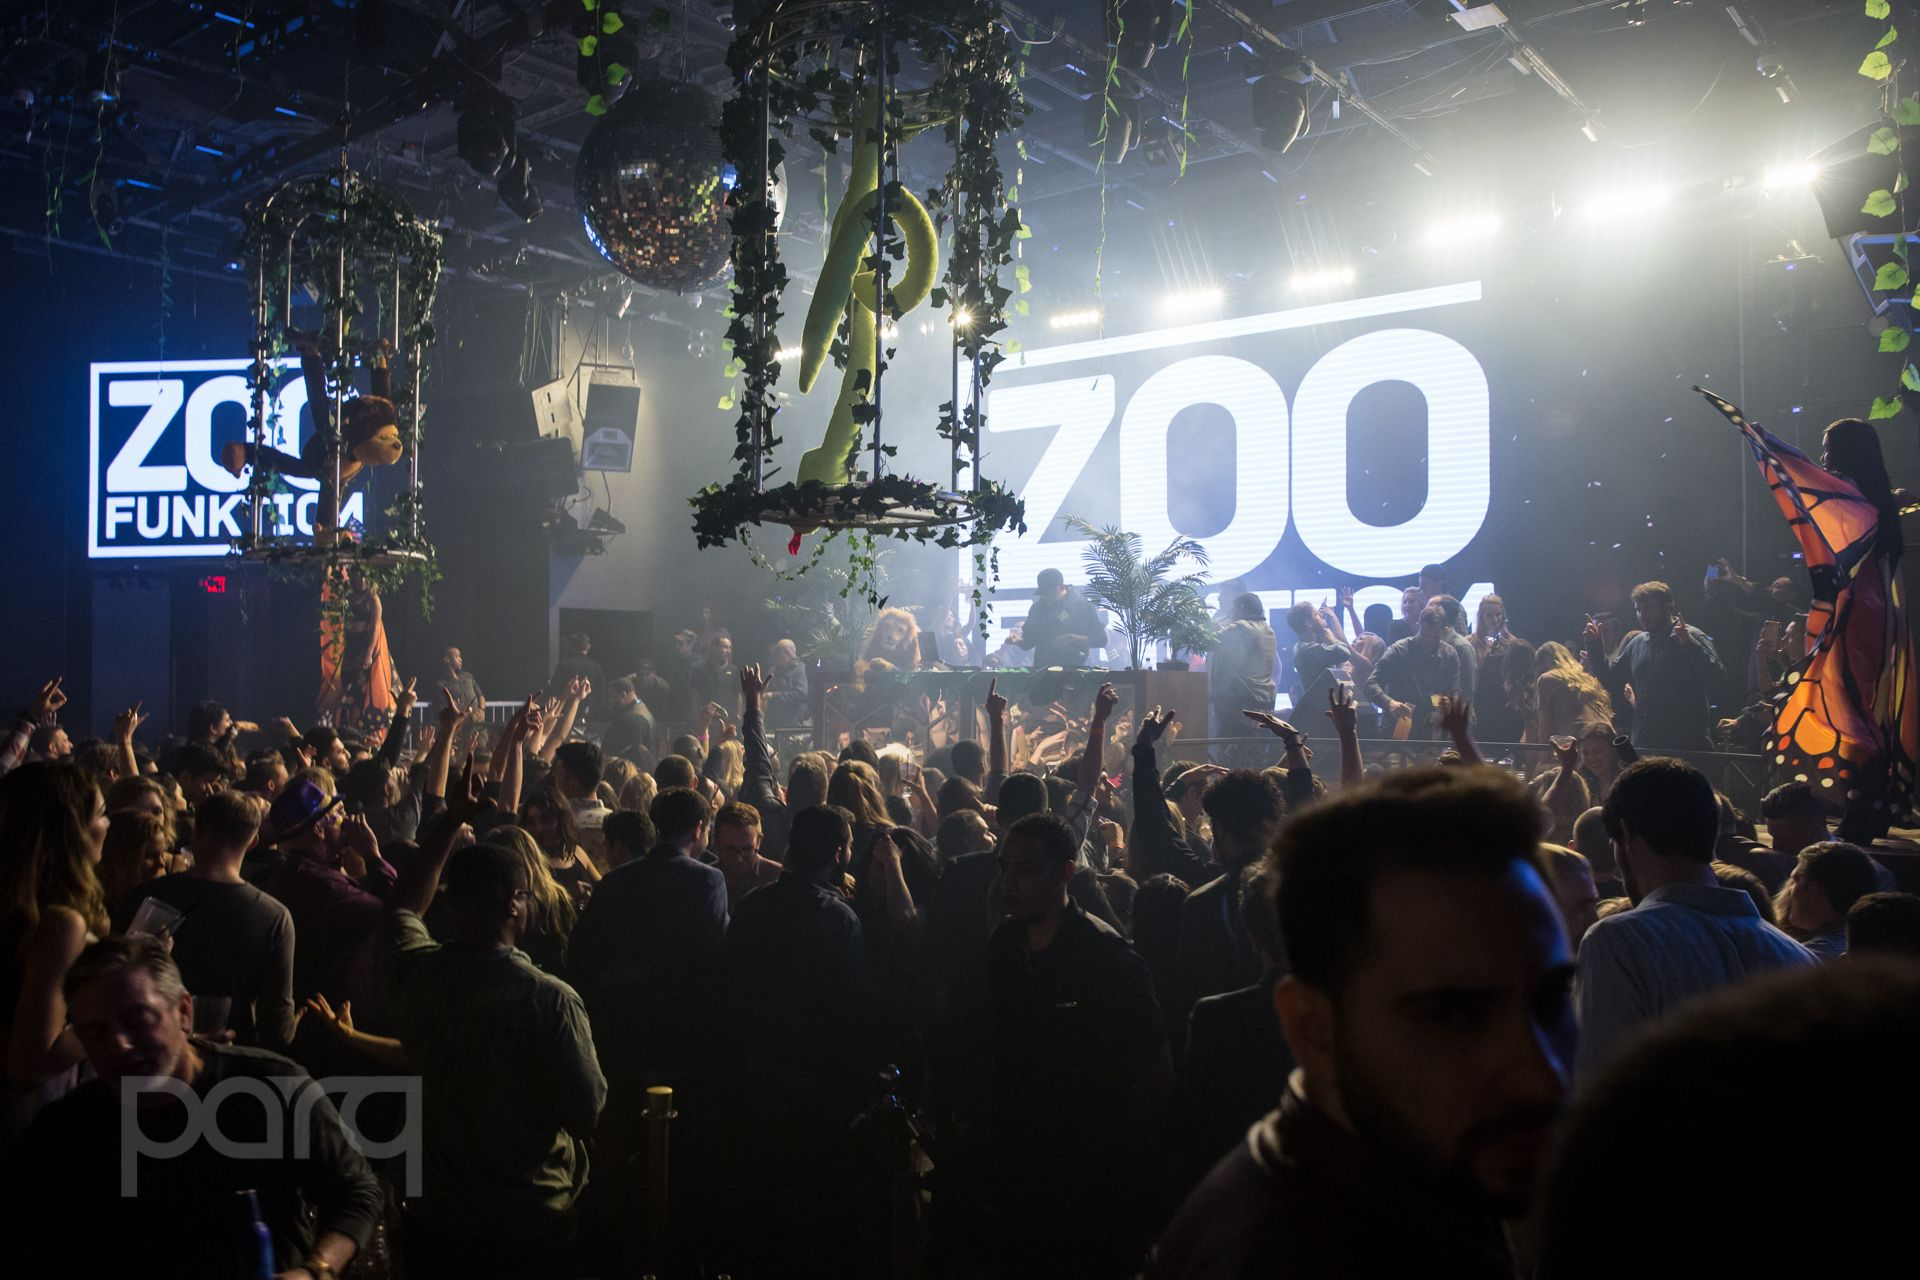 San-Diego-Nightclub-Zoo Funktion-28.jpg